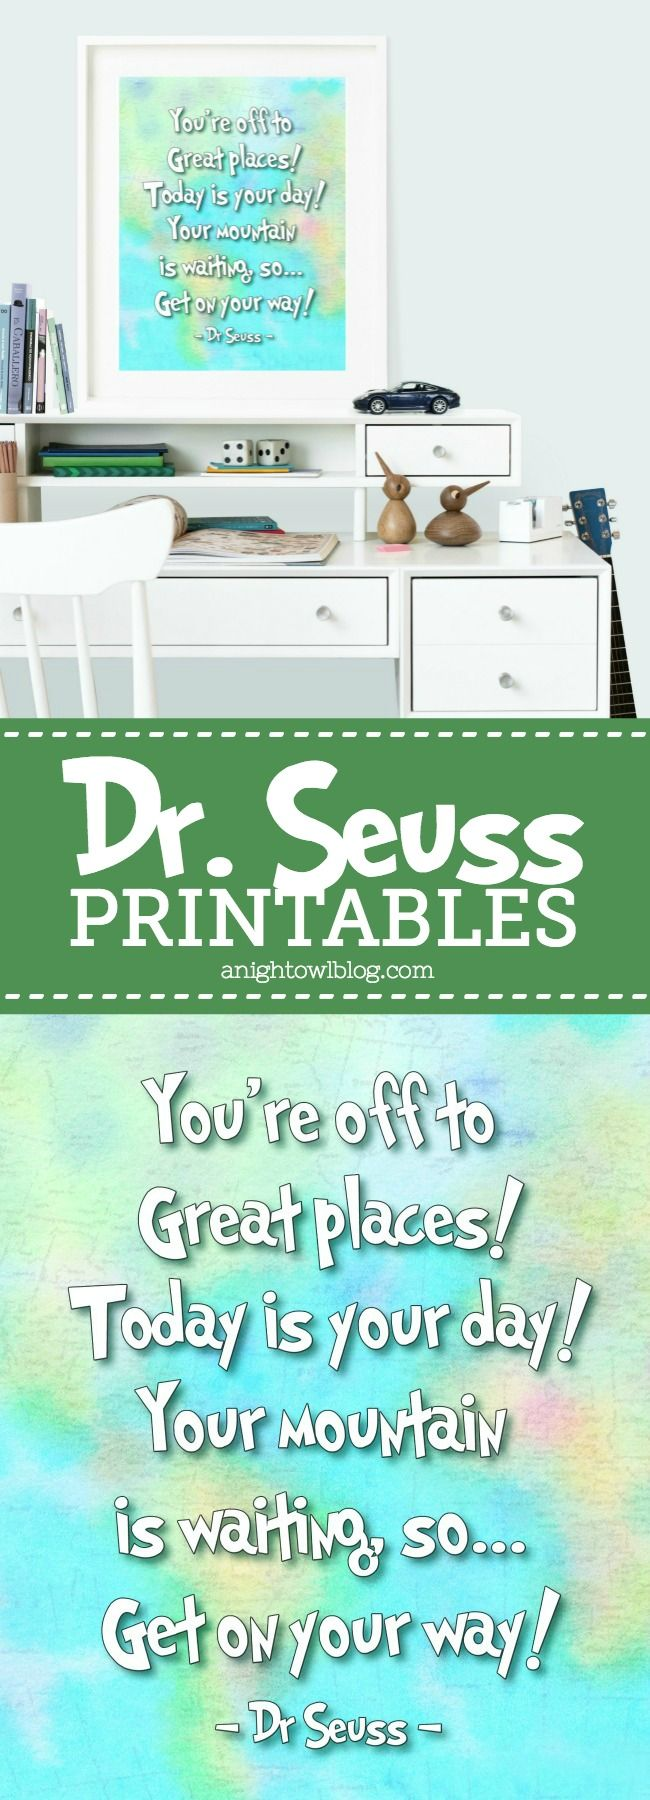 Do you love Dr. Seuss? Then you'll love these Oh the Places You'll Go Dr. Seuss Printables - perfect for any kids space!